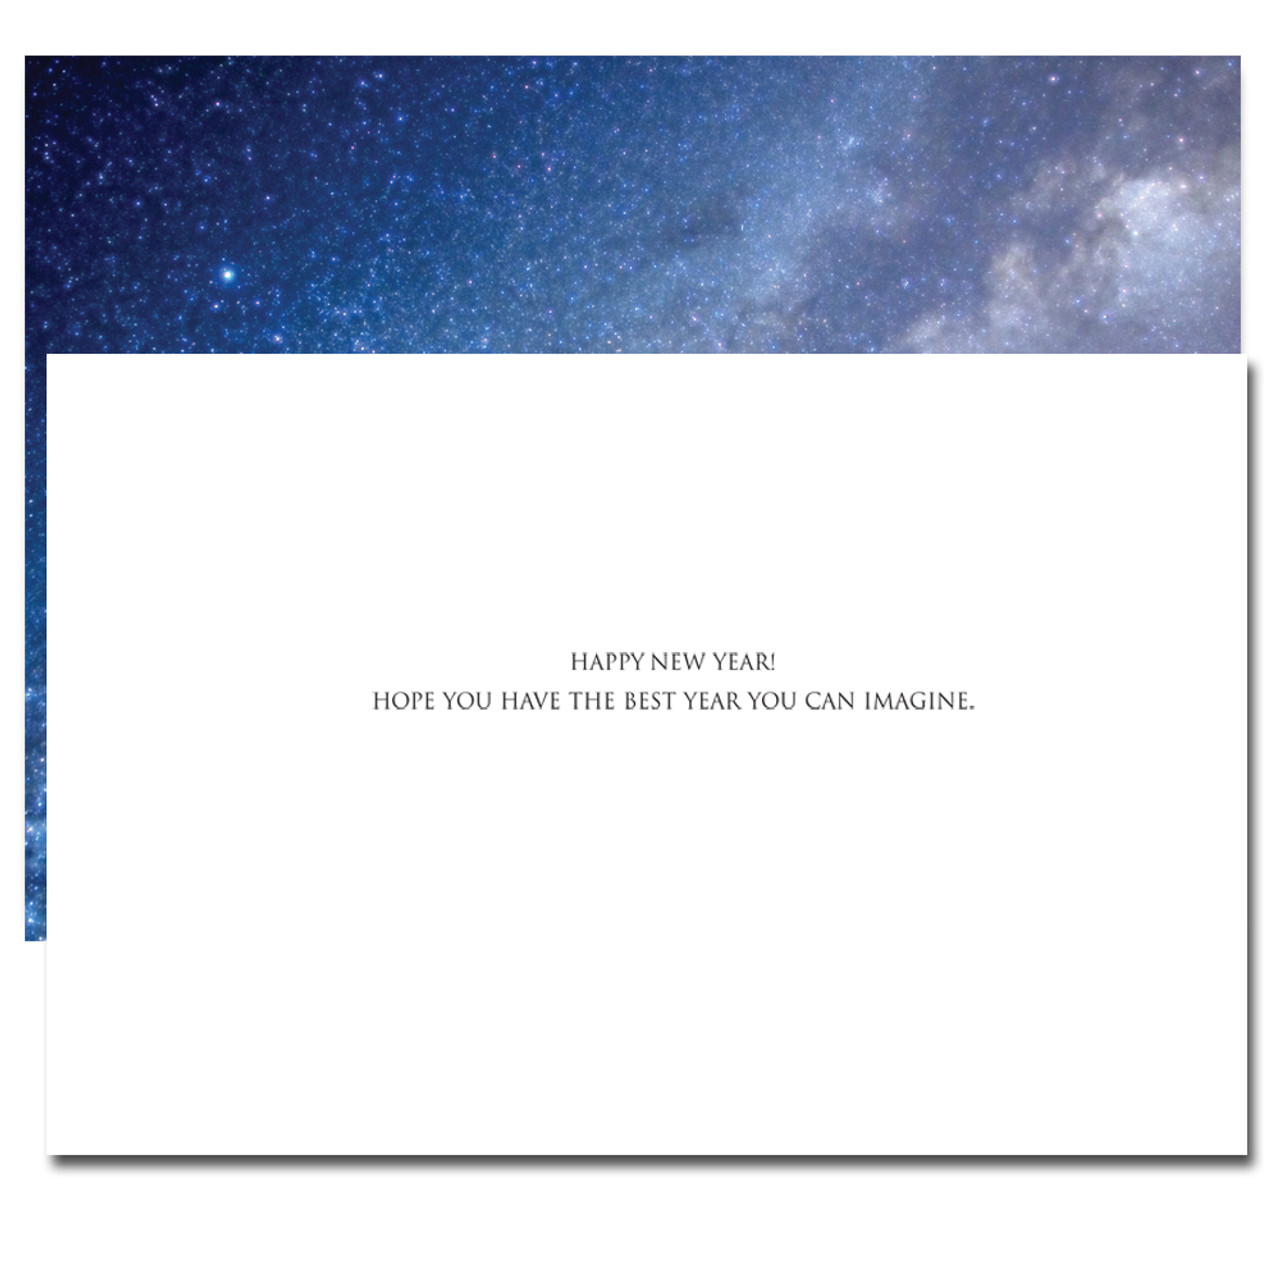 Inside of Milky Way New Year card reads: Happy New Year! Hope you have the best year you can imagine.